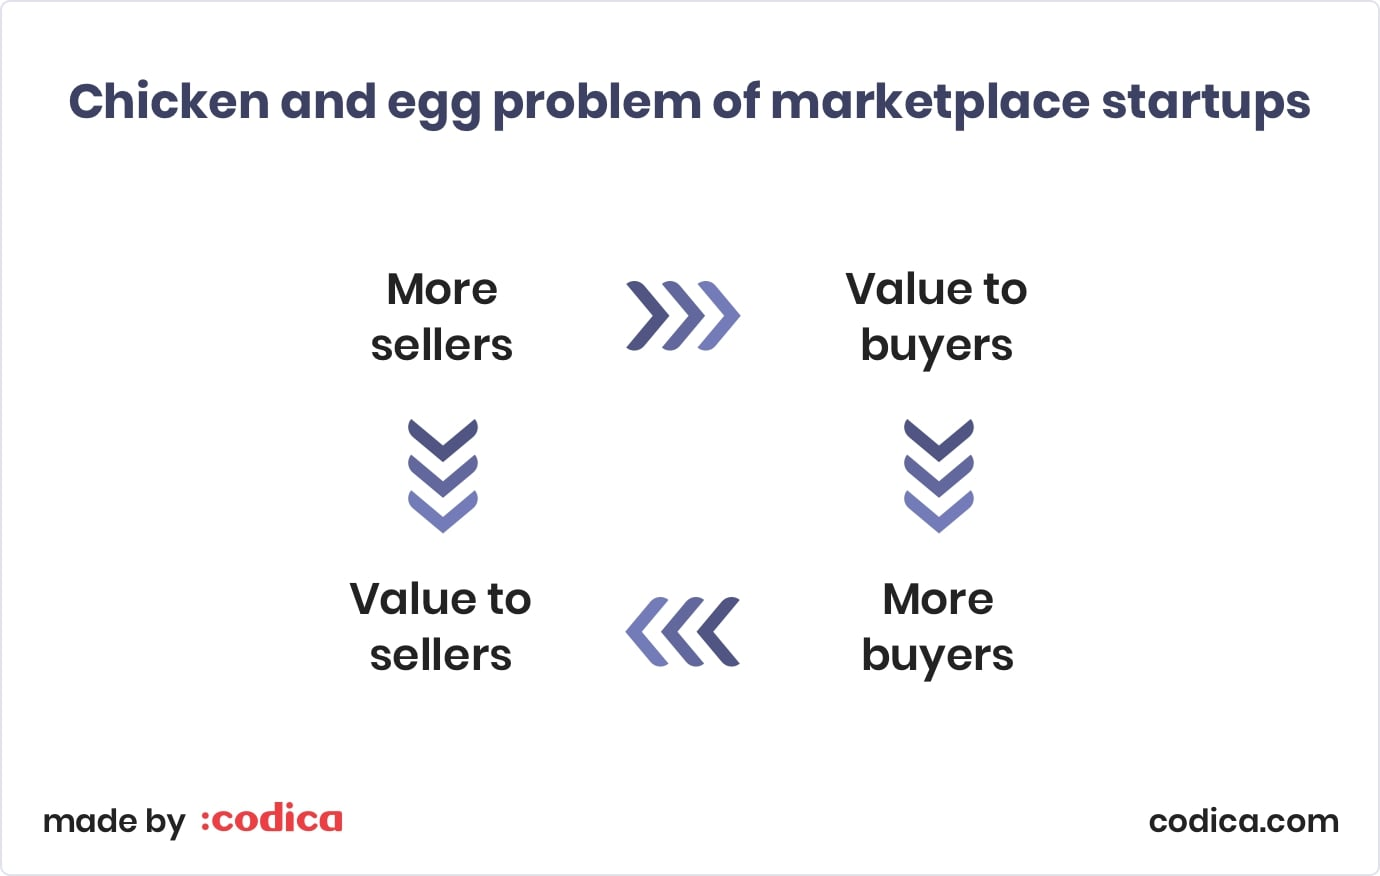 Chicken and egg problem for online marketplace startups | Codica